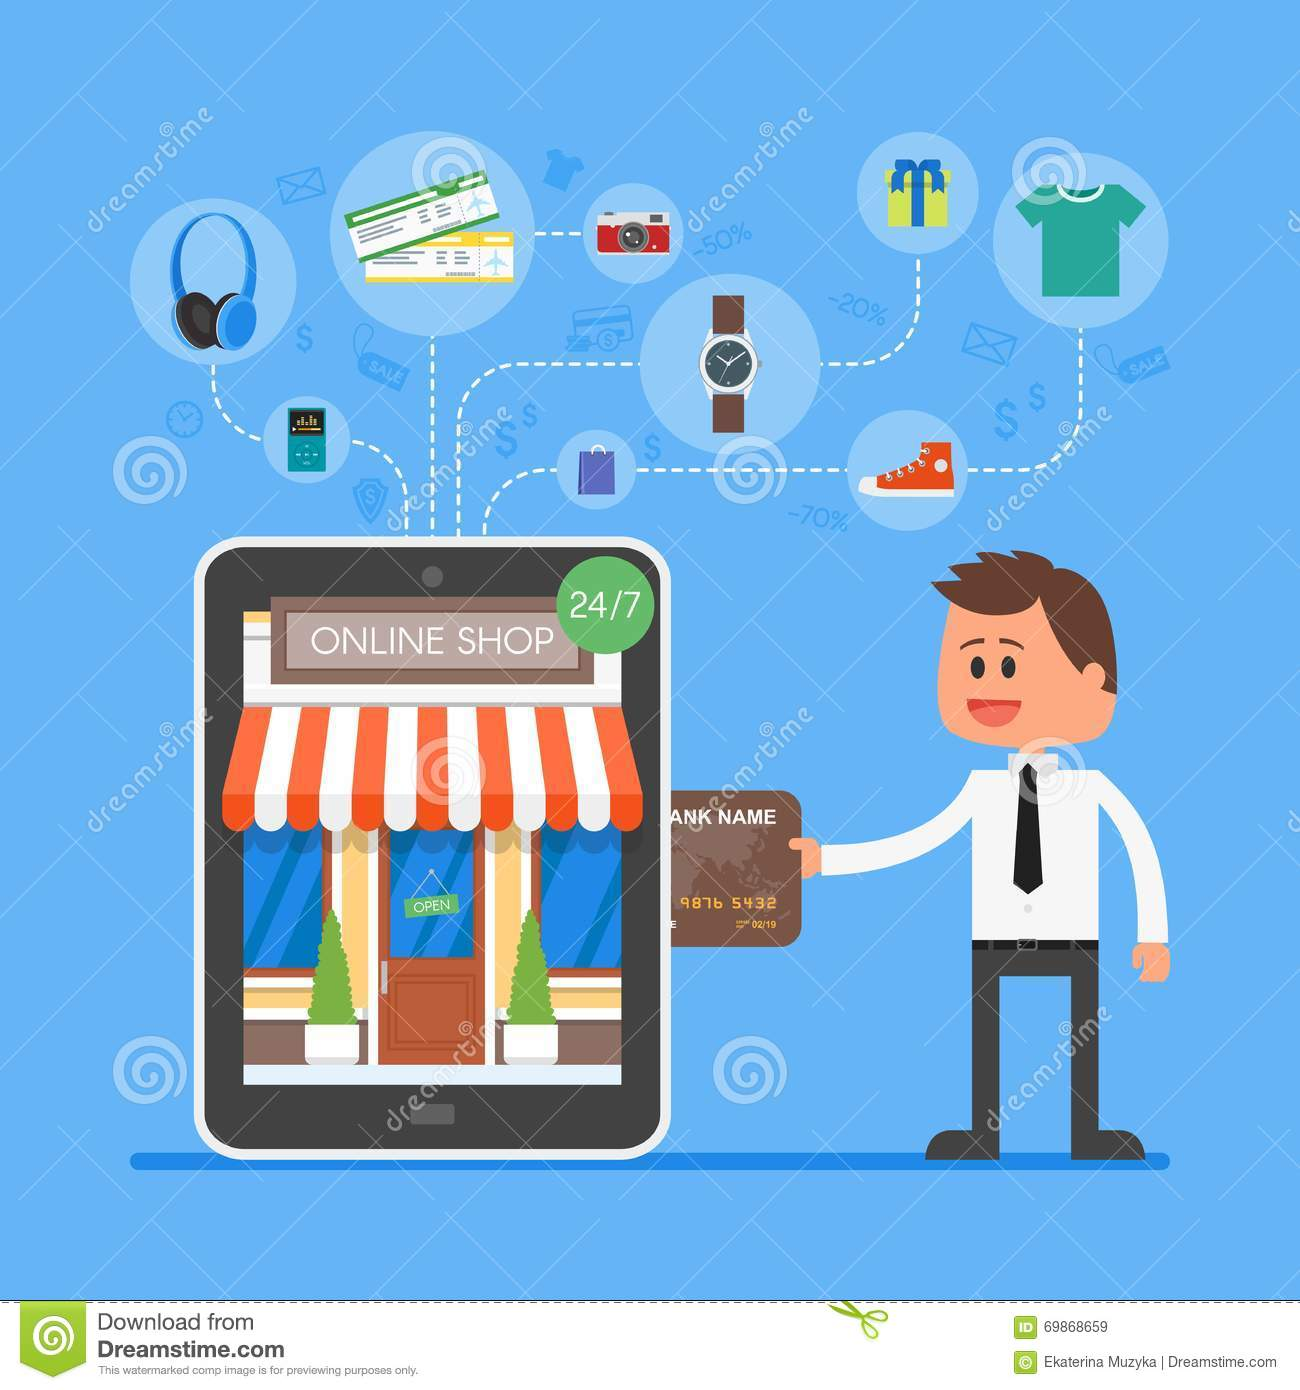 online-mobile-shopping-concept-vector-illustration-flat-style-design-payment-internet-man-buying-products-tablet-69868659.jpg